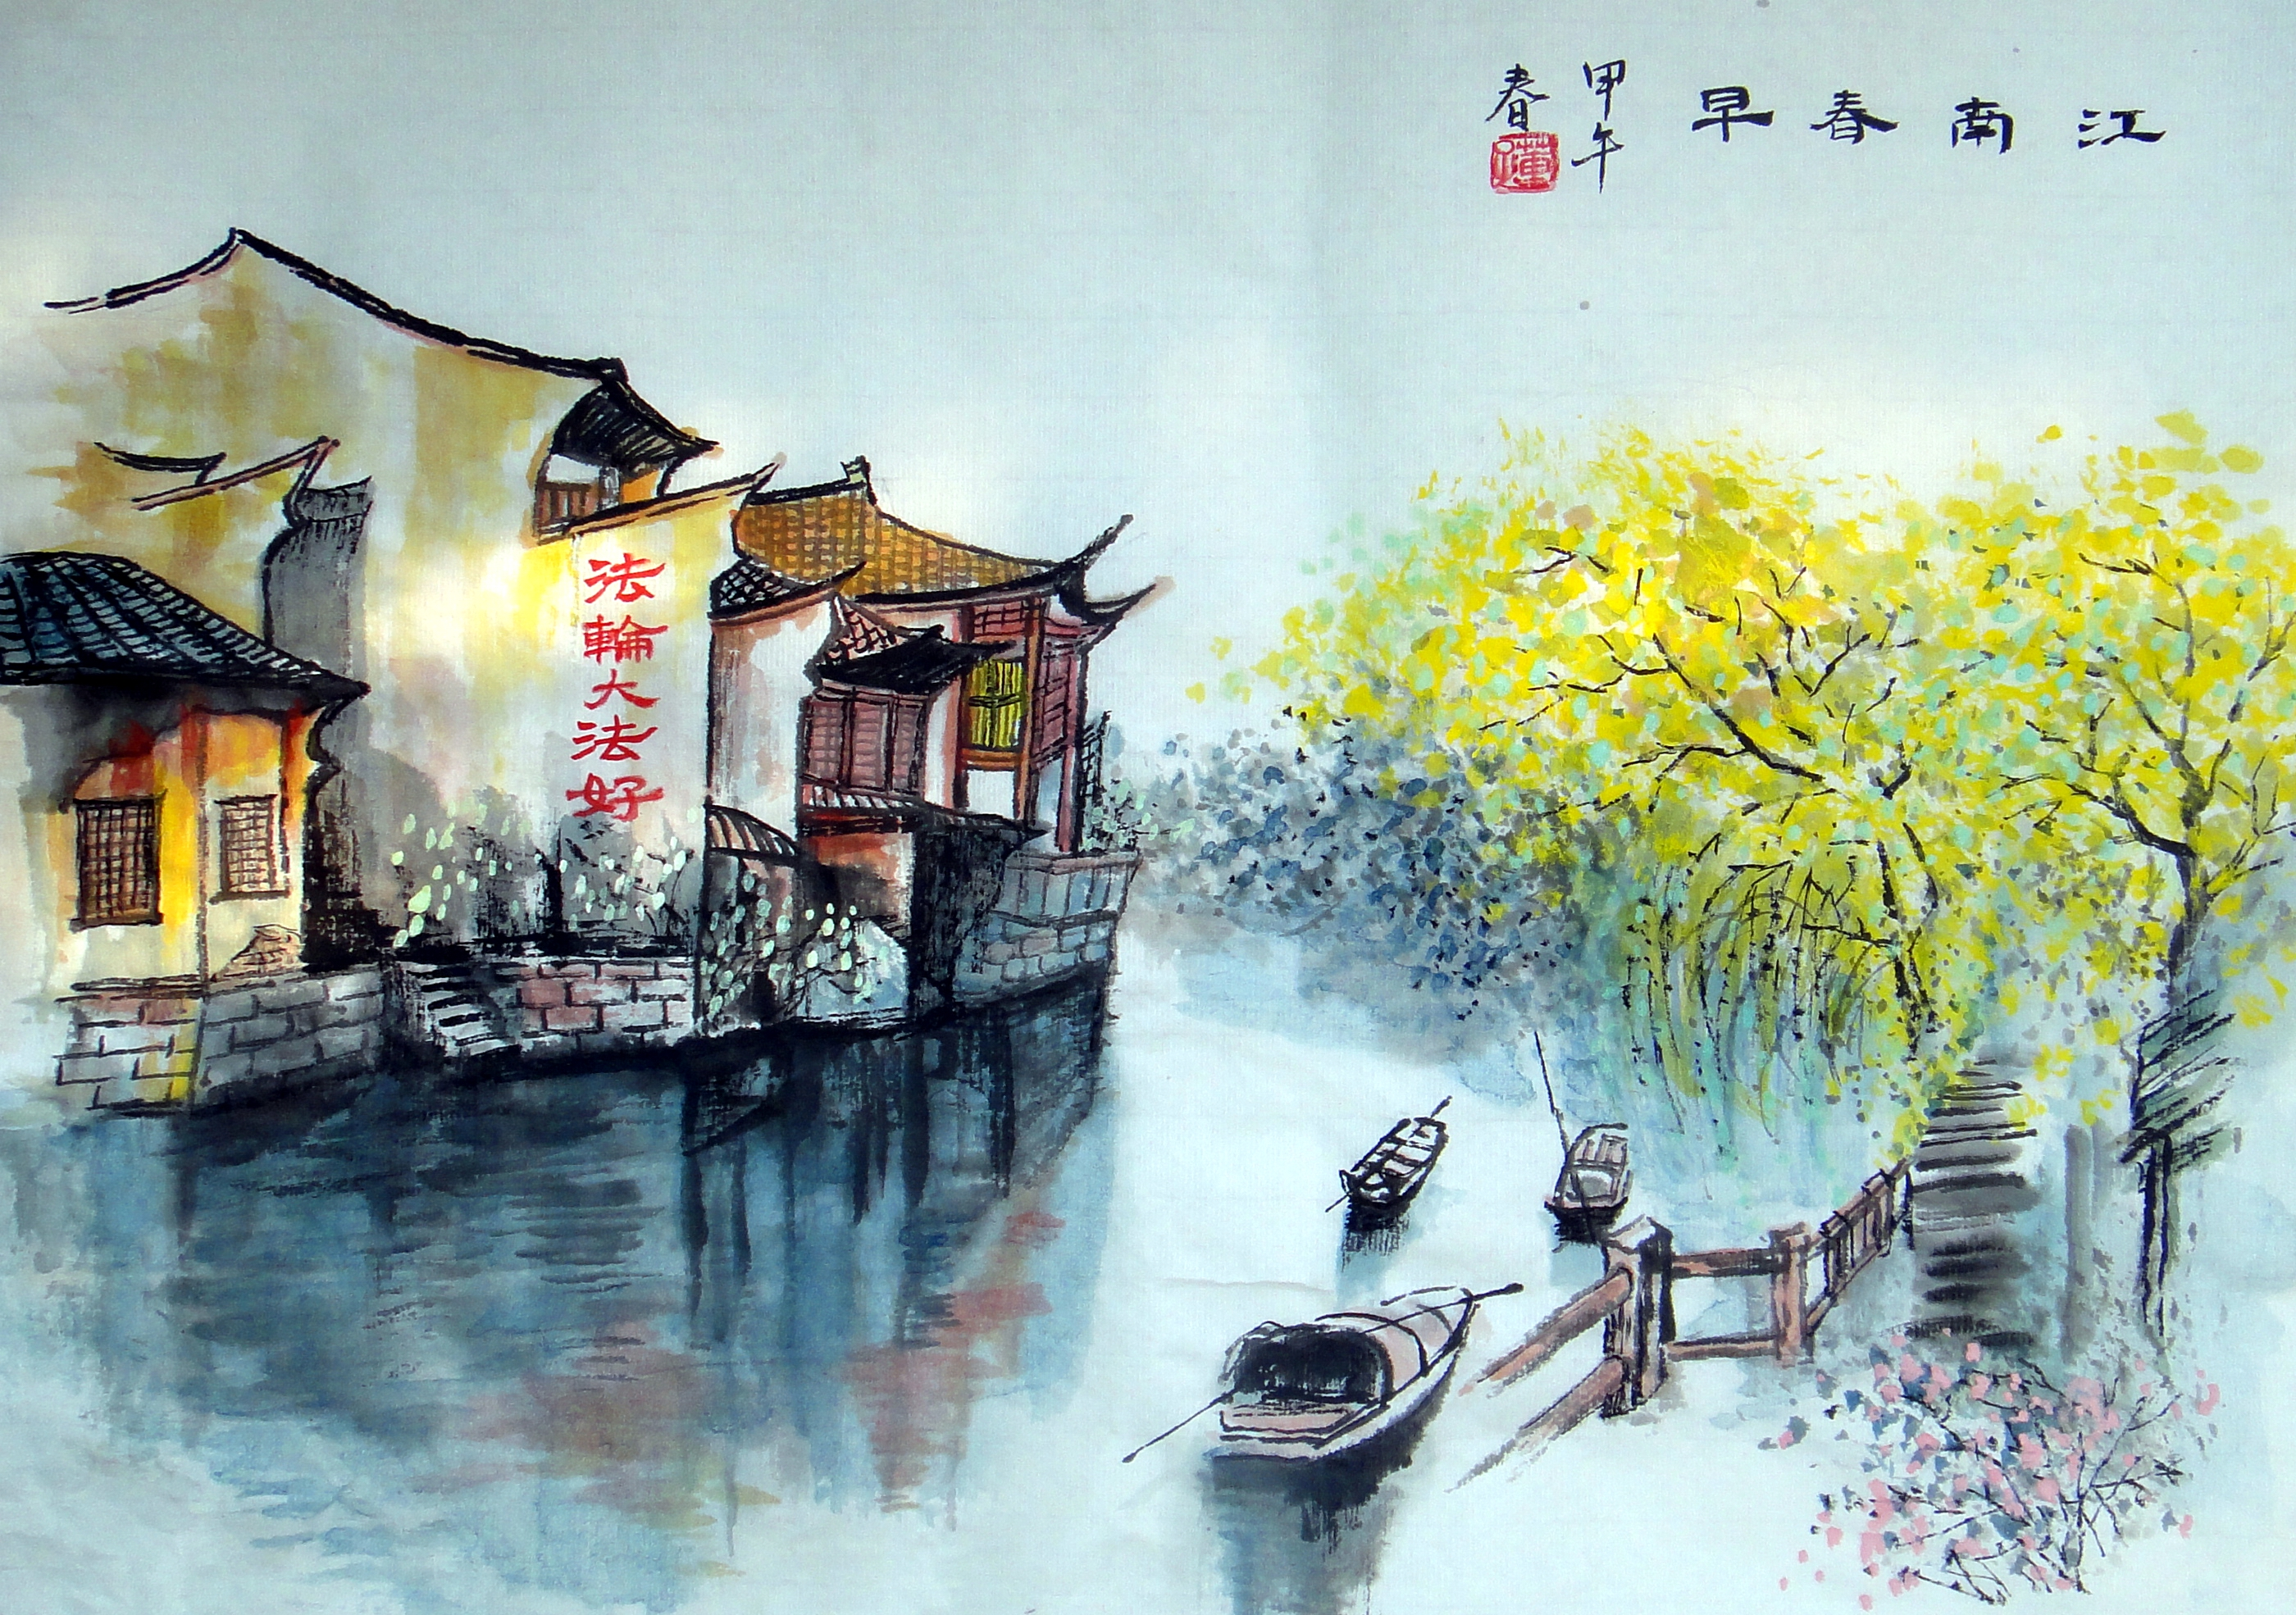 Chinese painting presentation justin 39 s intl 203 blog for Chinese mural art